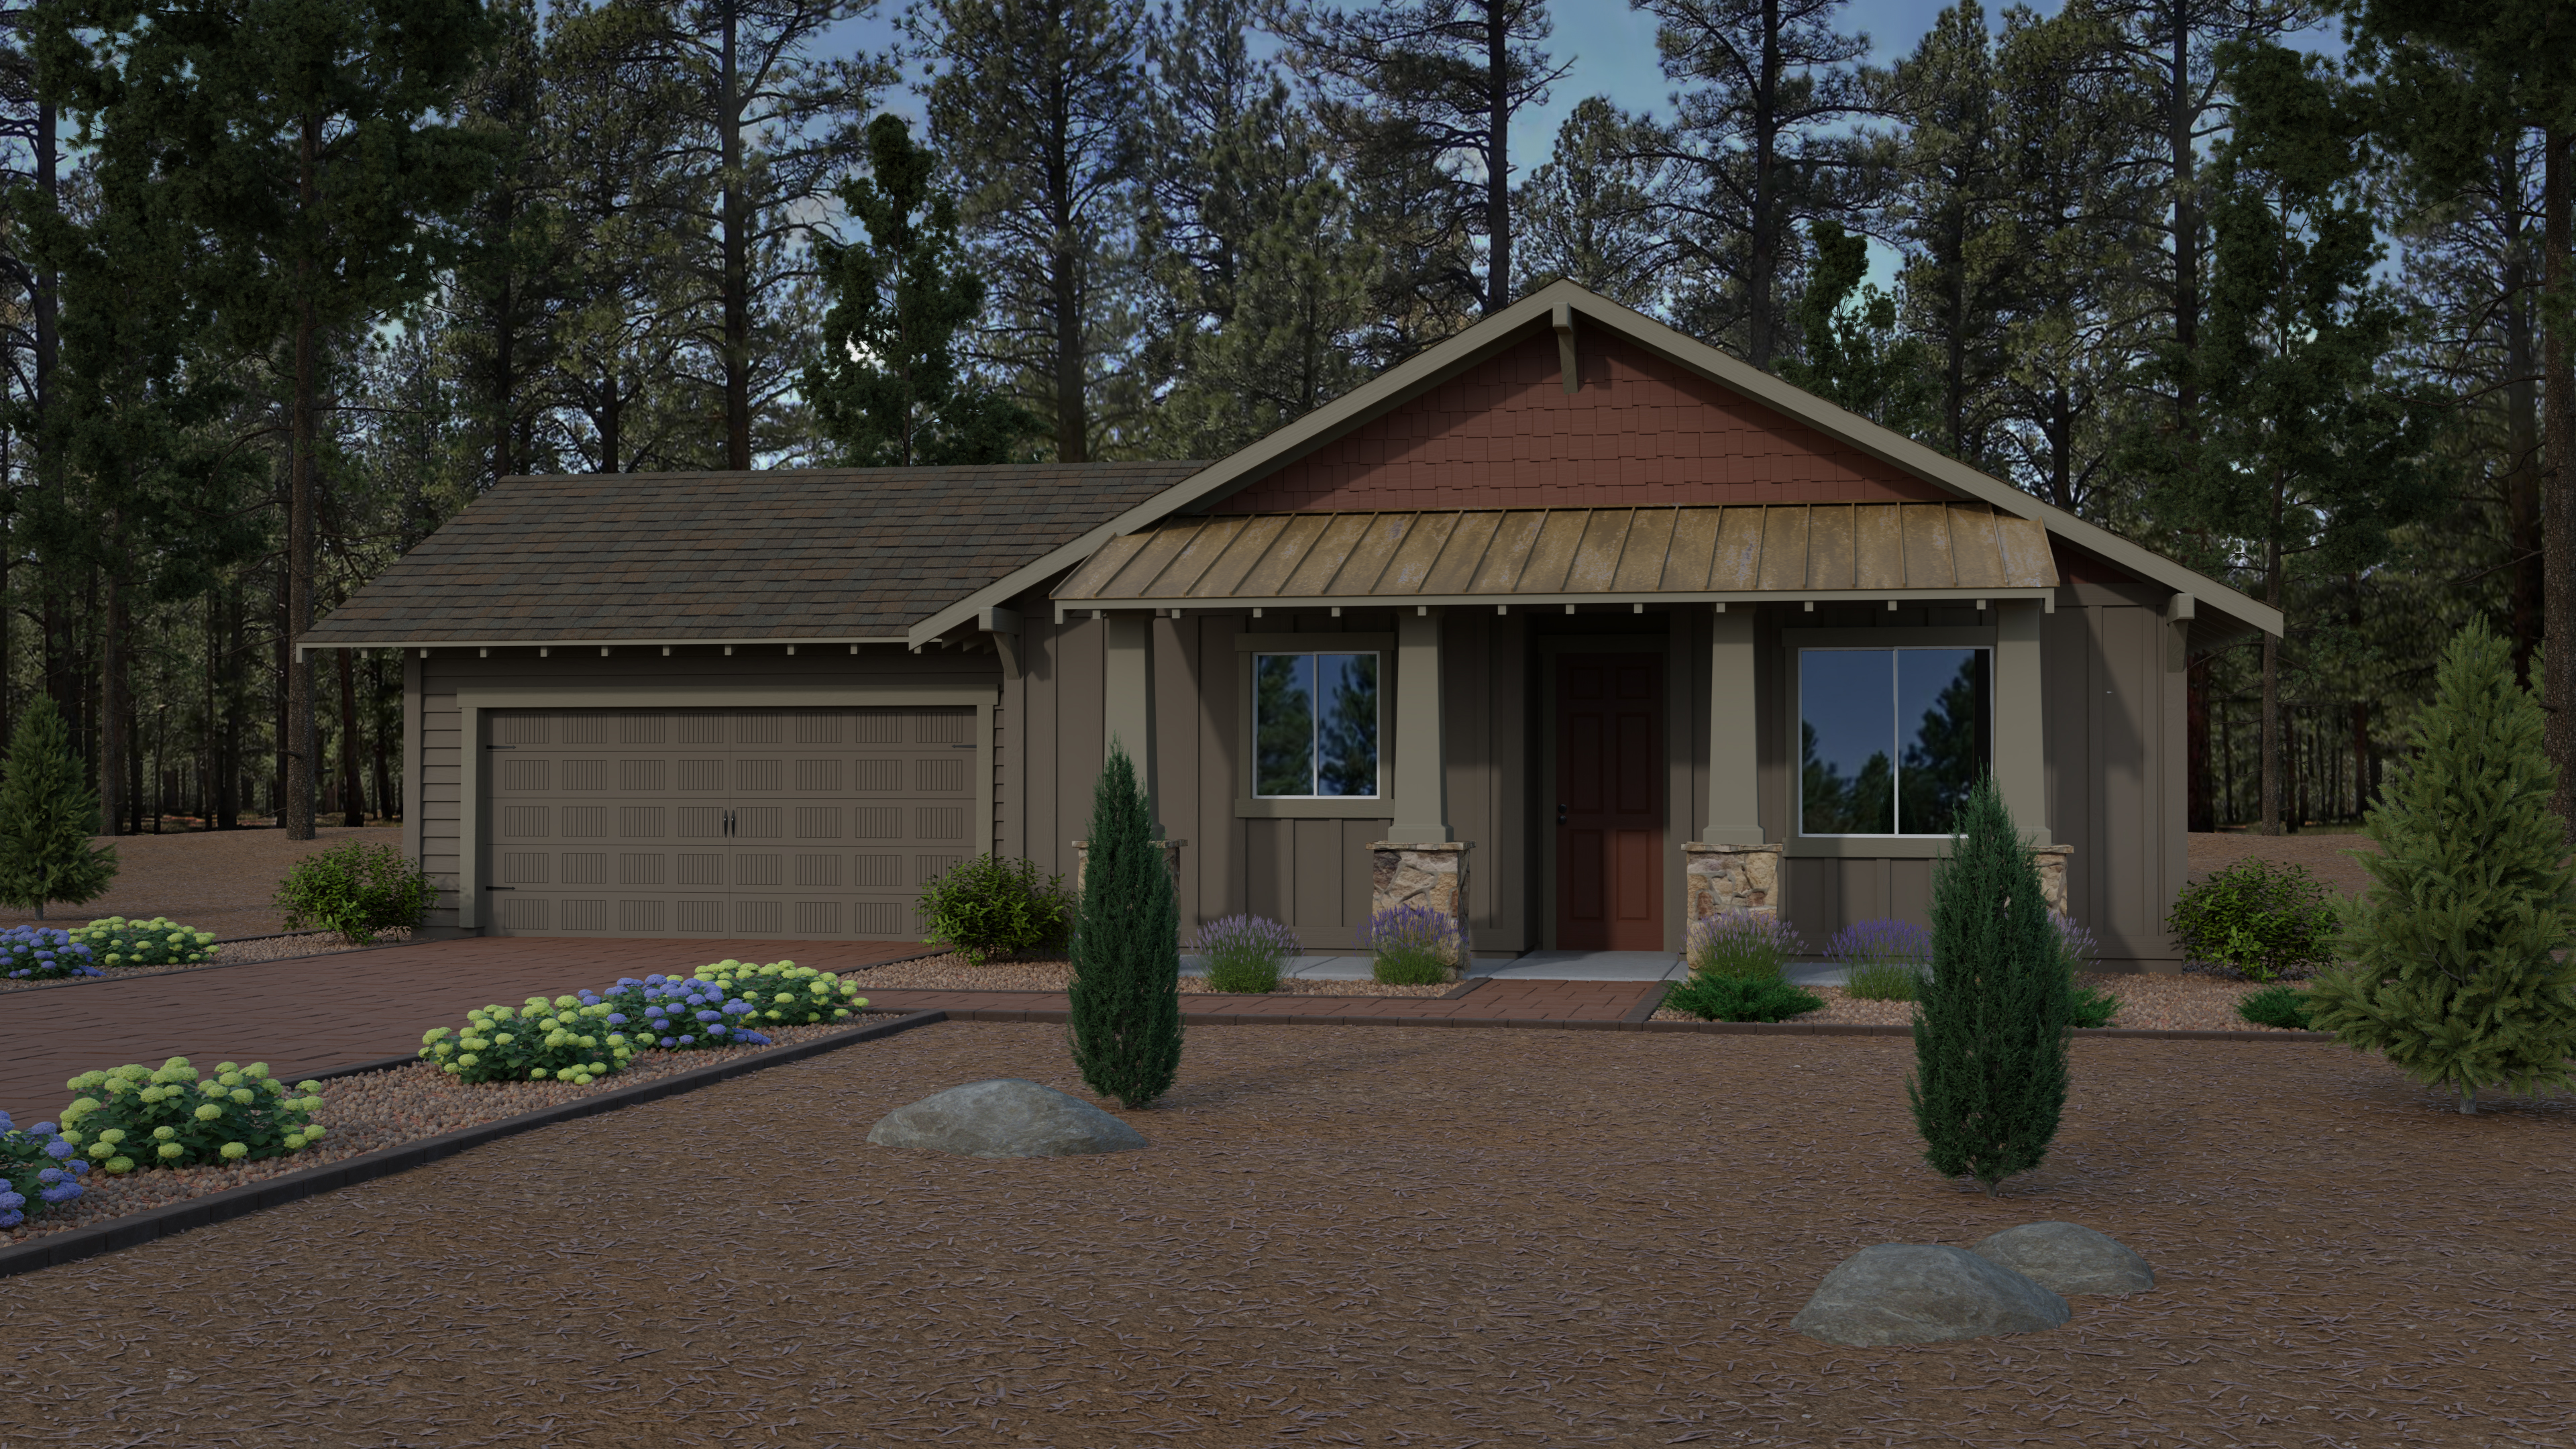 New home at Crestview by Capstone Homes in Flagstaff, AZ